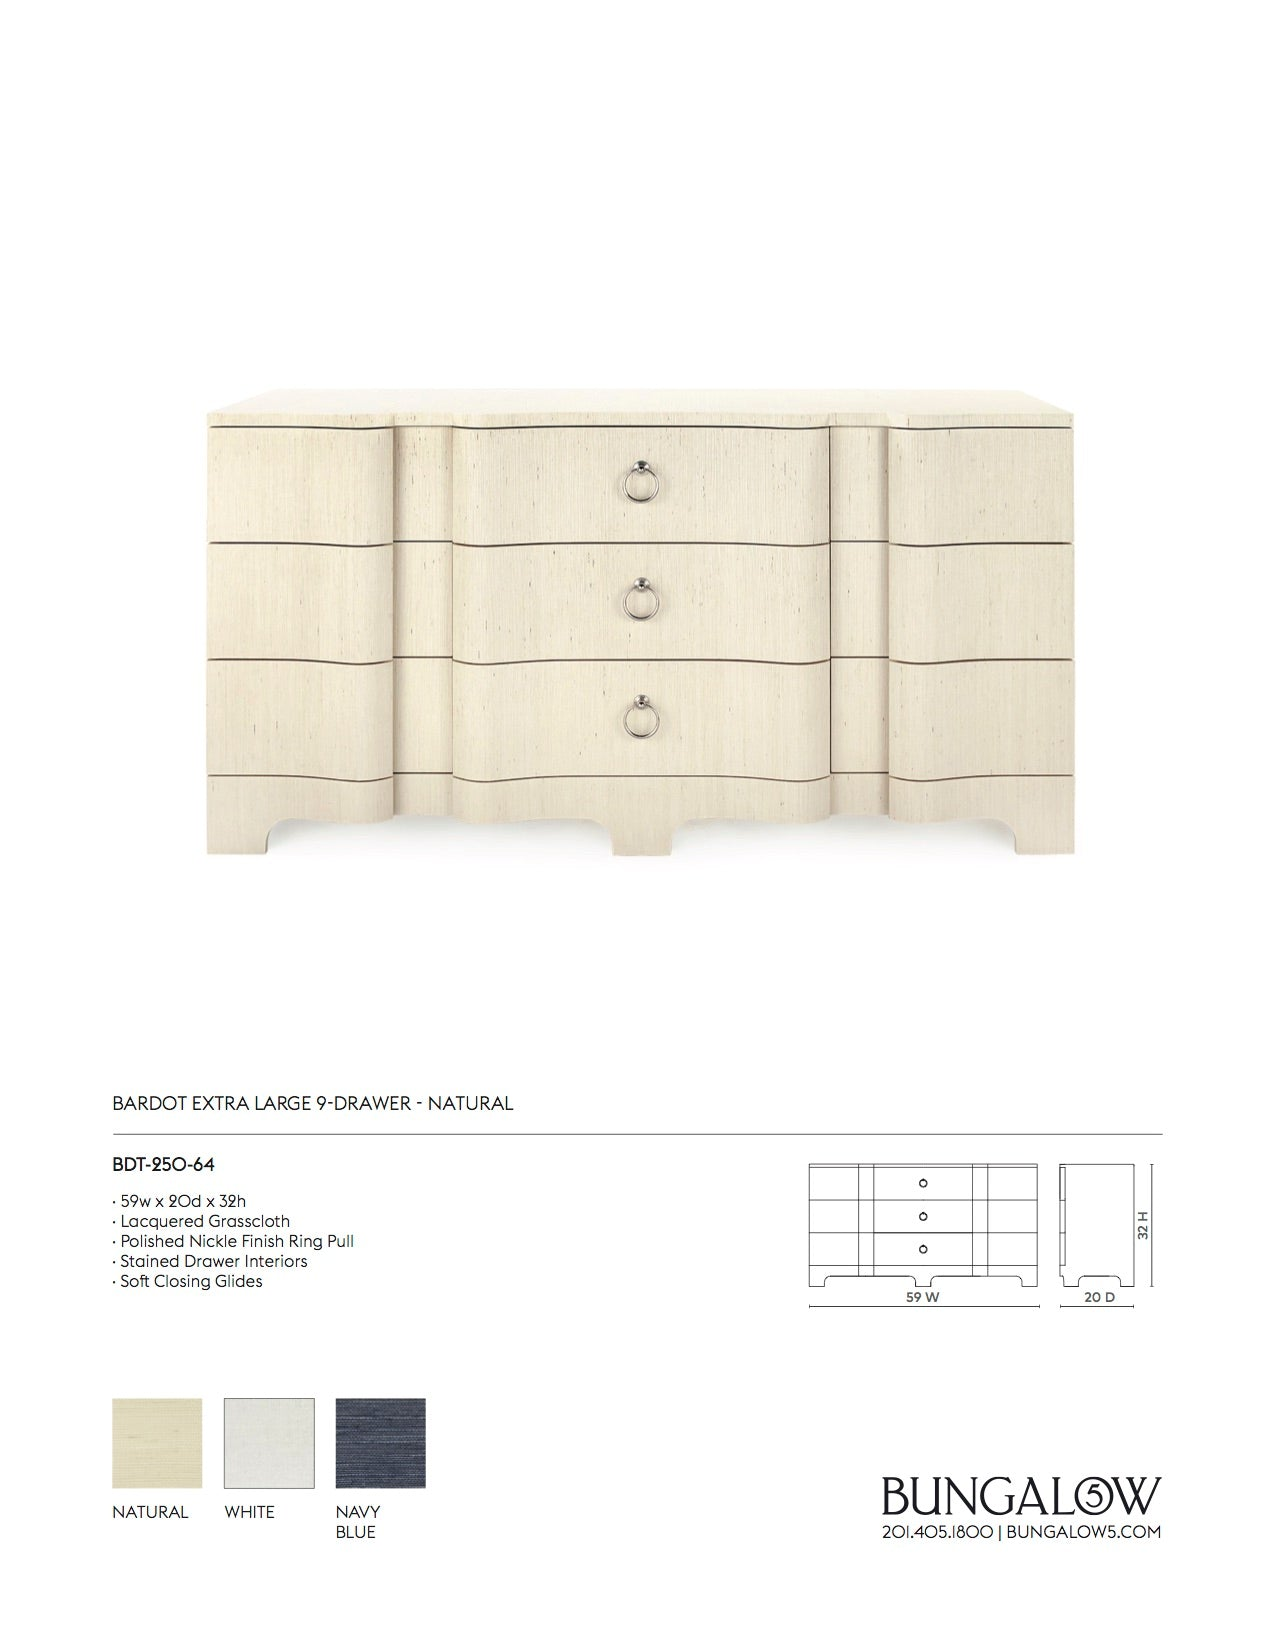 Bungalow 5 Bardot Large 3 Drawer Natural Tearsheet